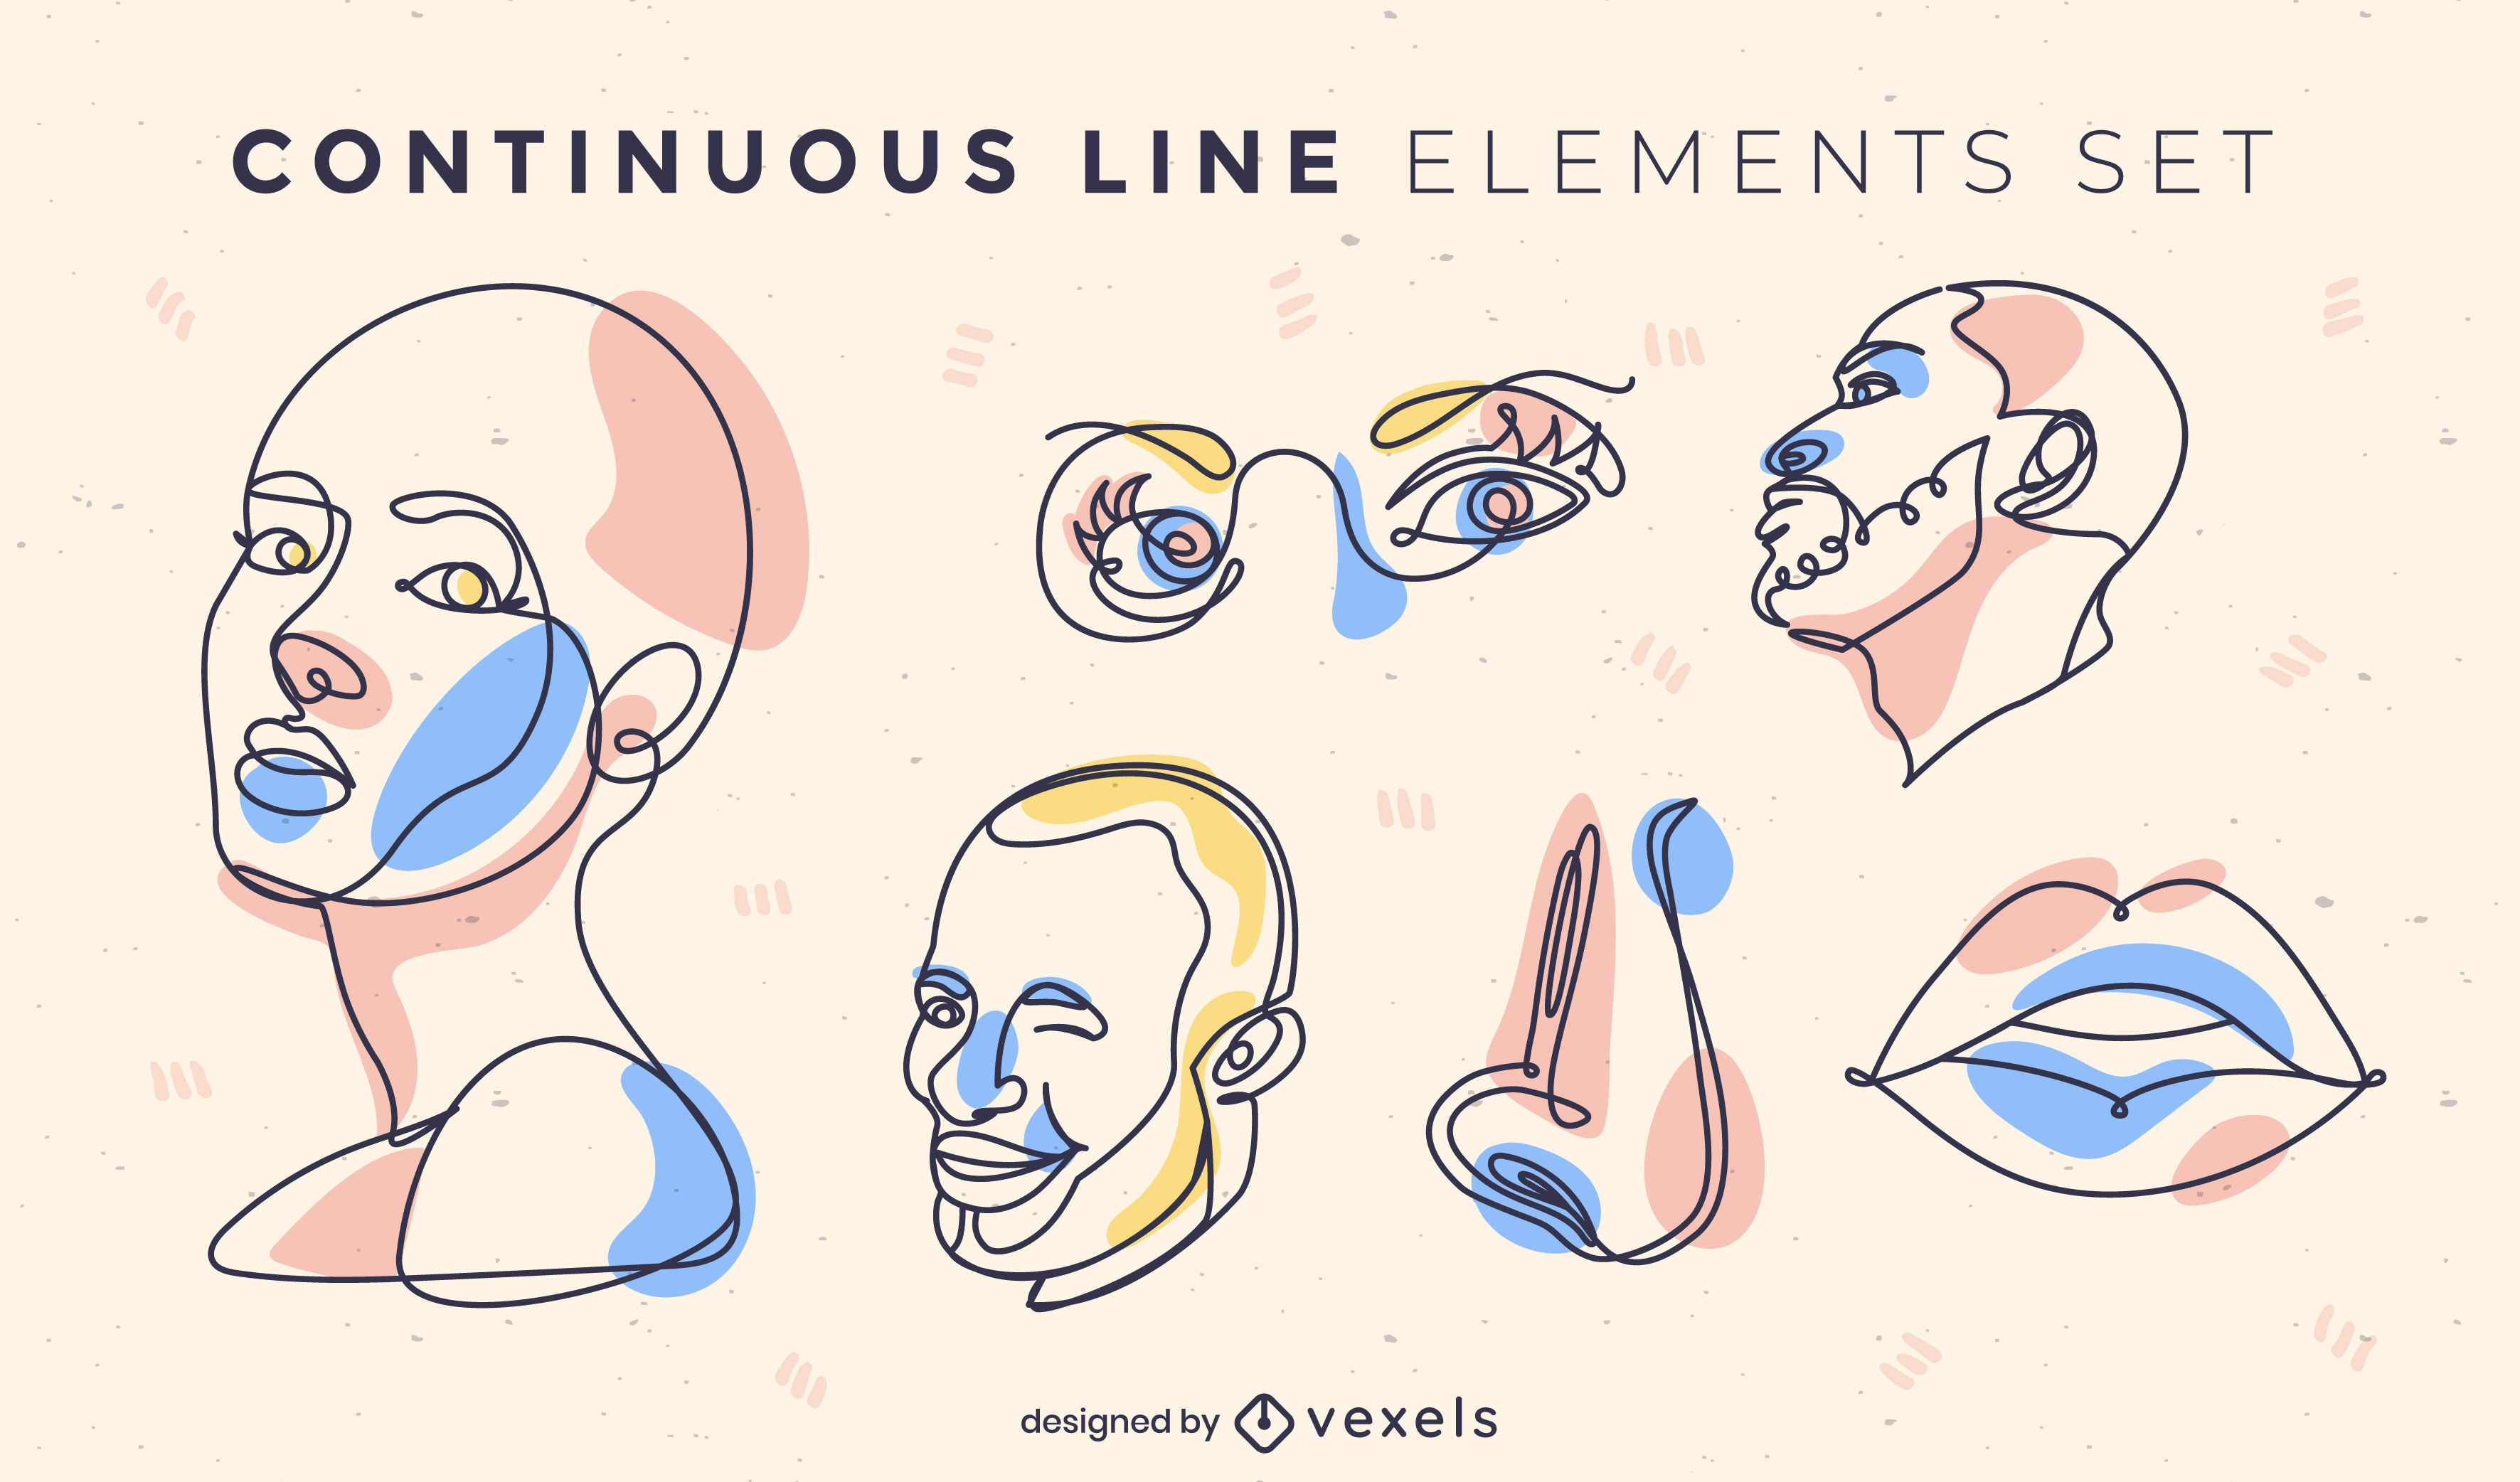 Face and anatomy items continuous line set